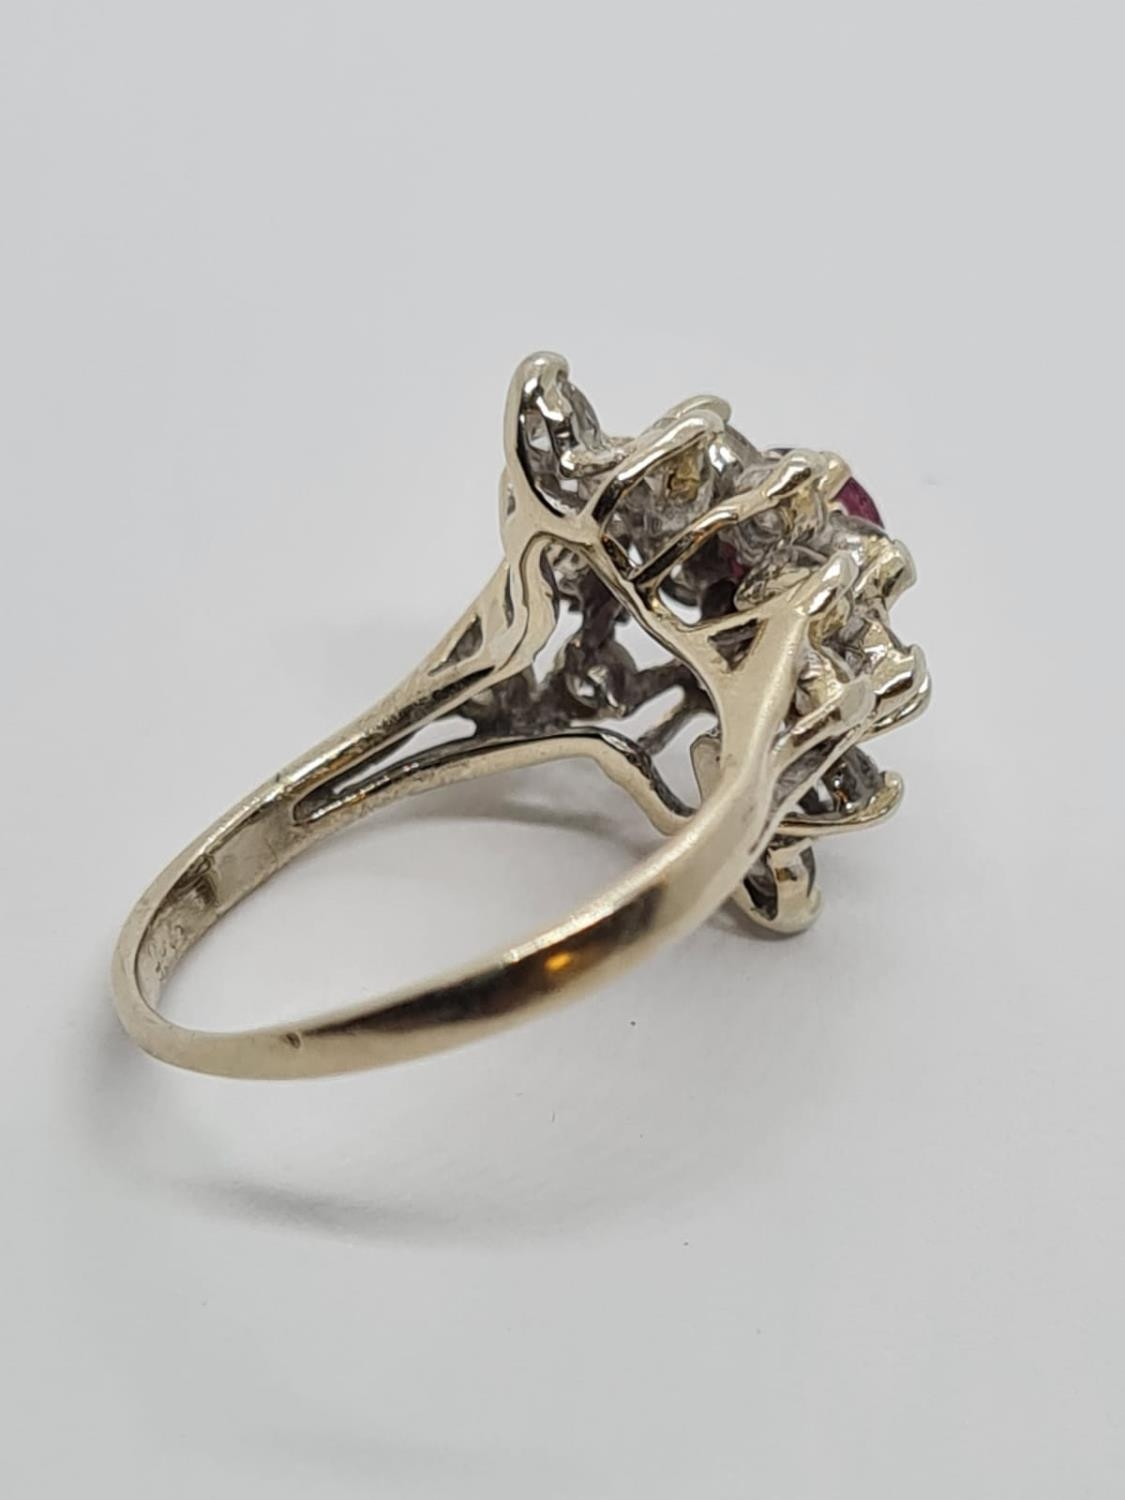 14ct Gold Ruby and Diamond RING. 2.8g Size H - Image 2 of 3